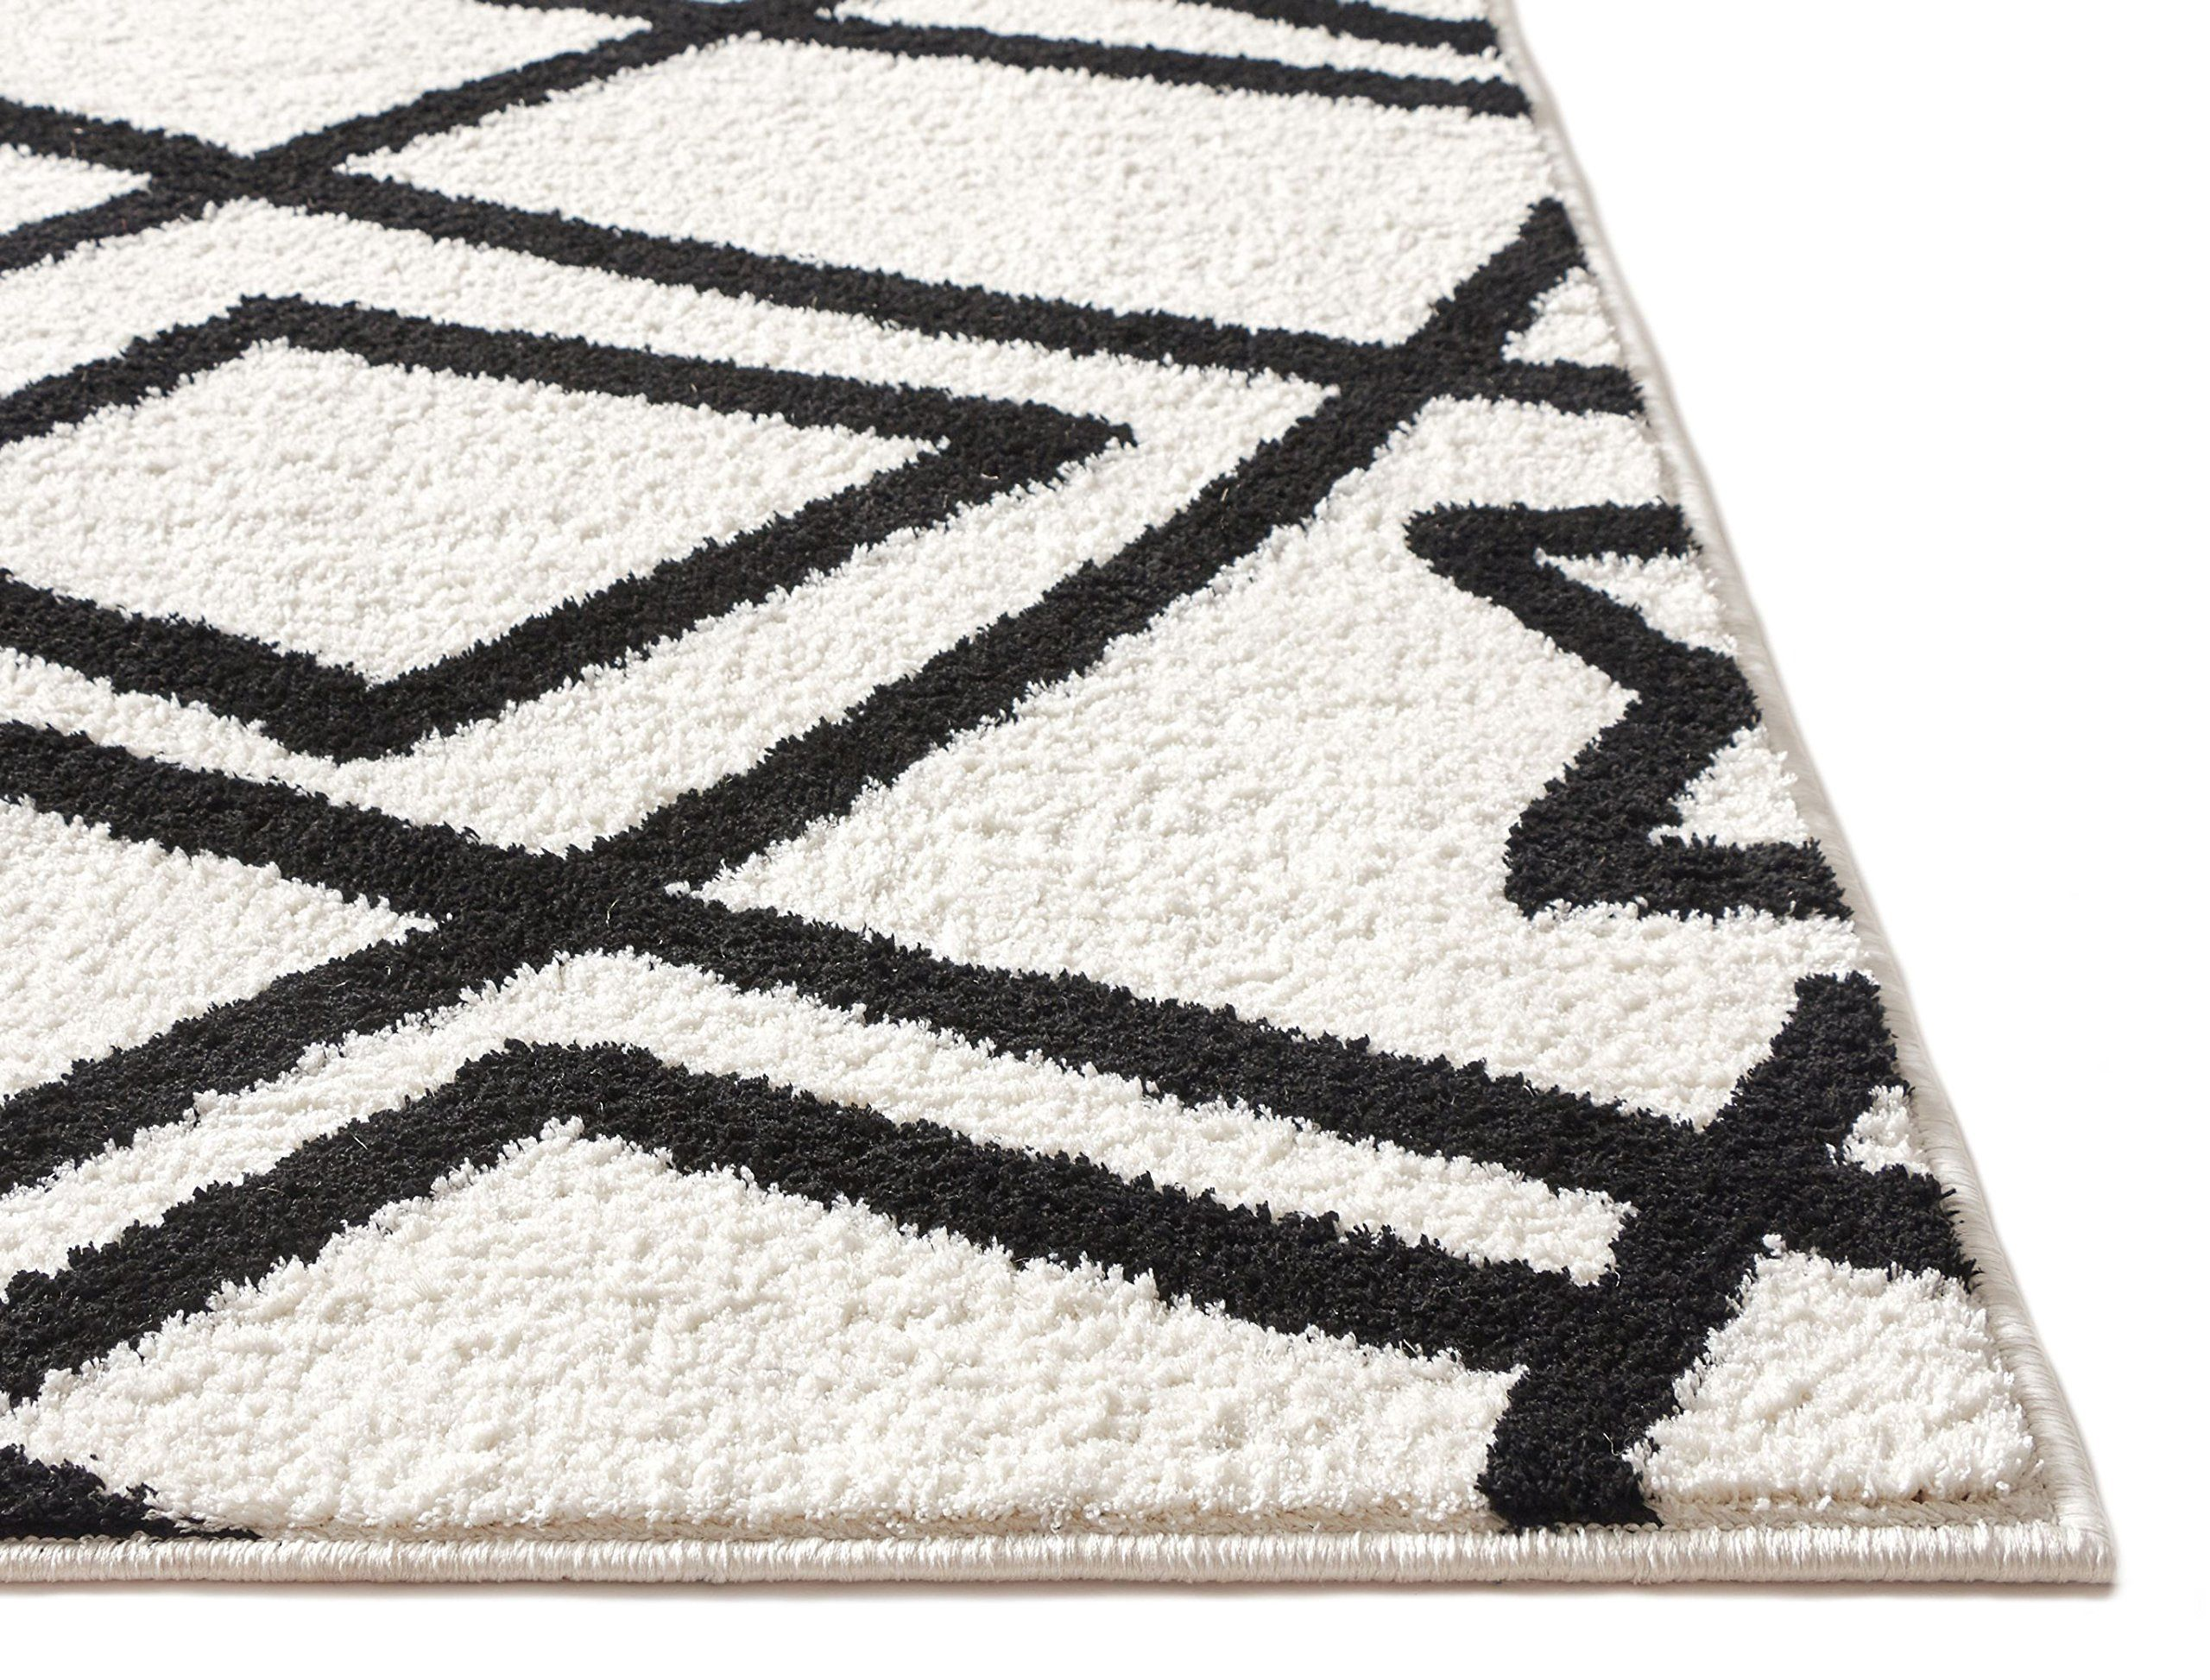 Pin On Area Rugs Runners And Pads